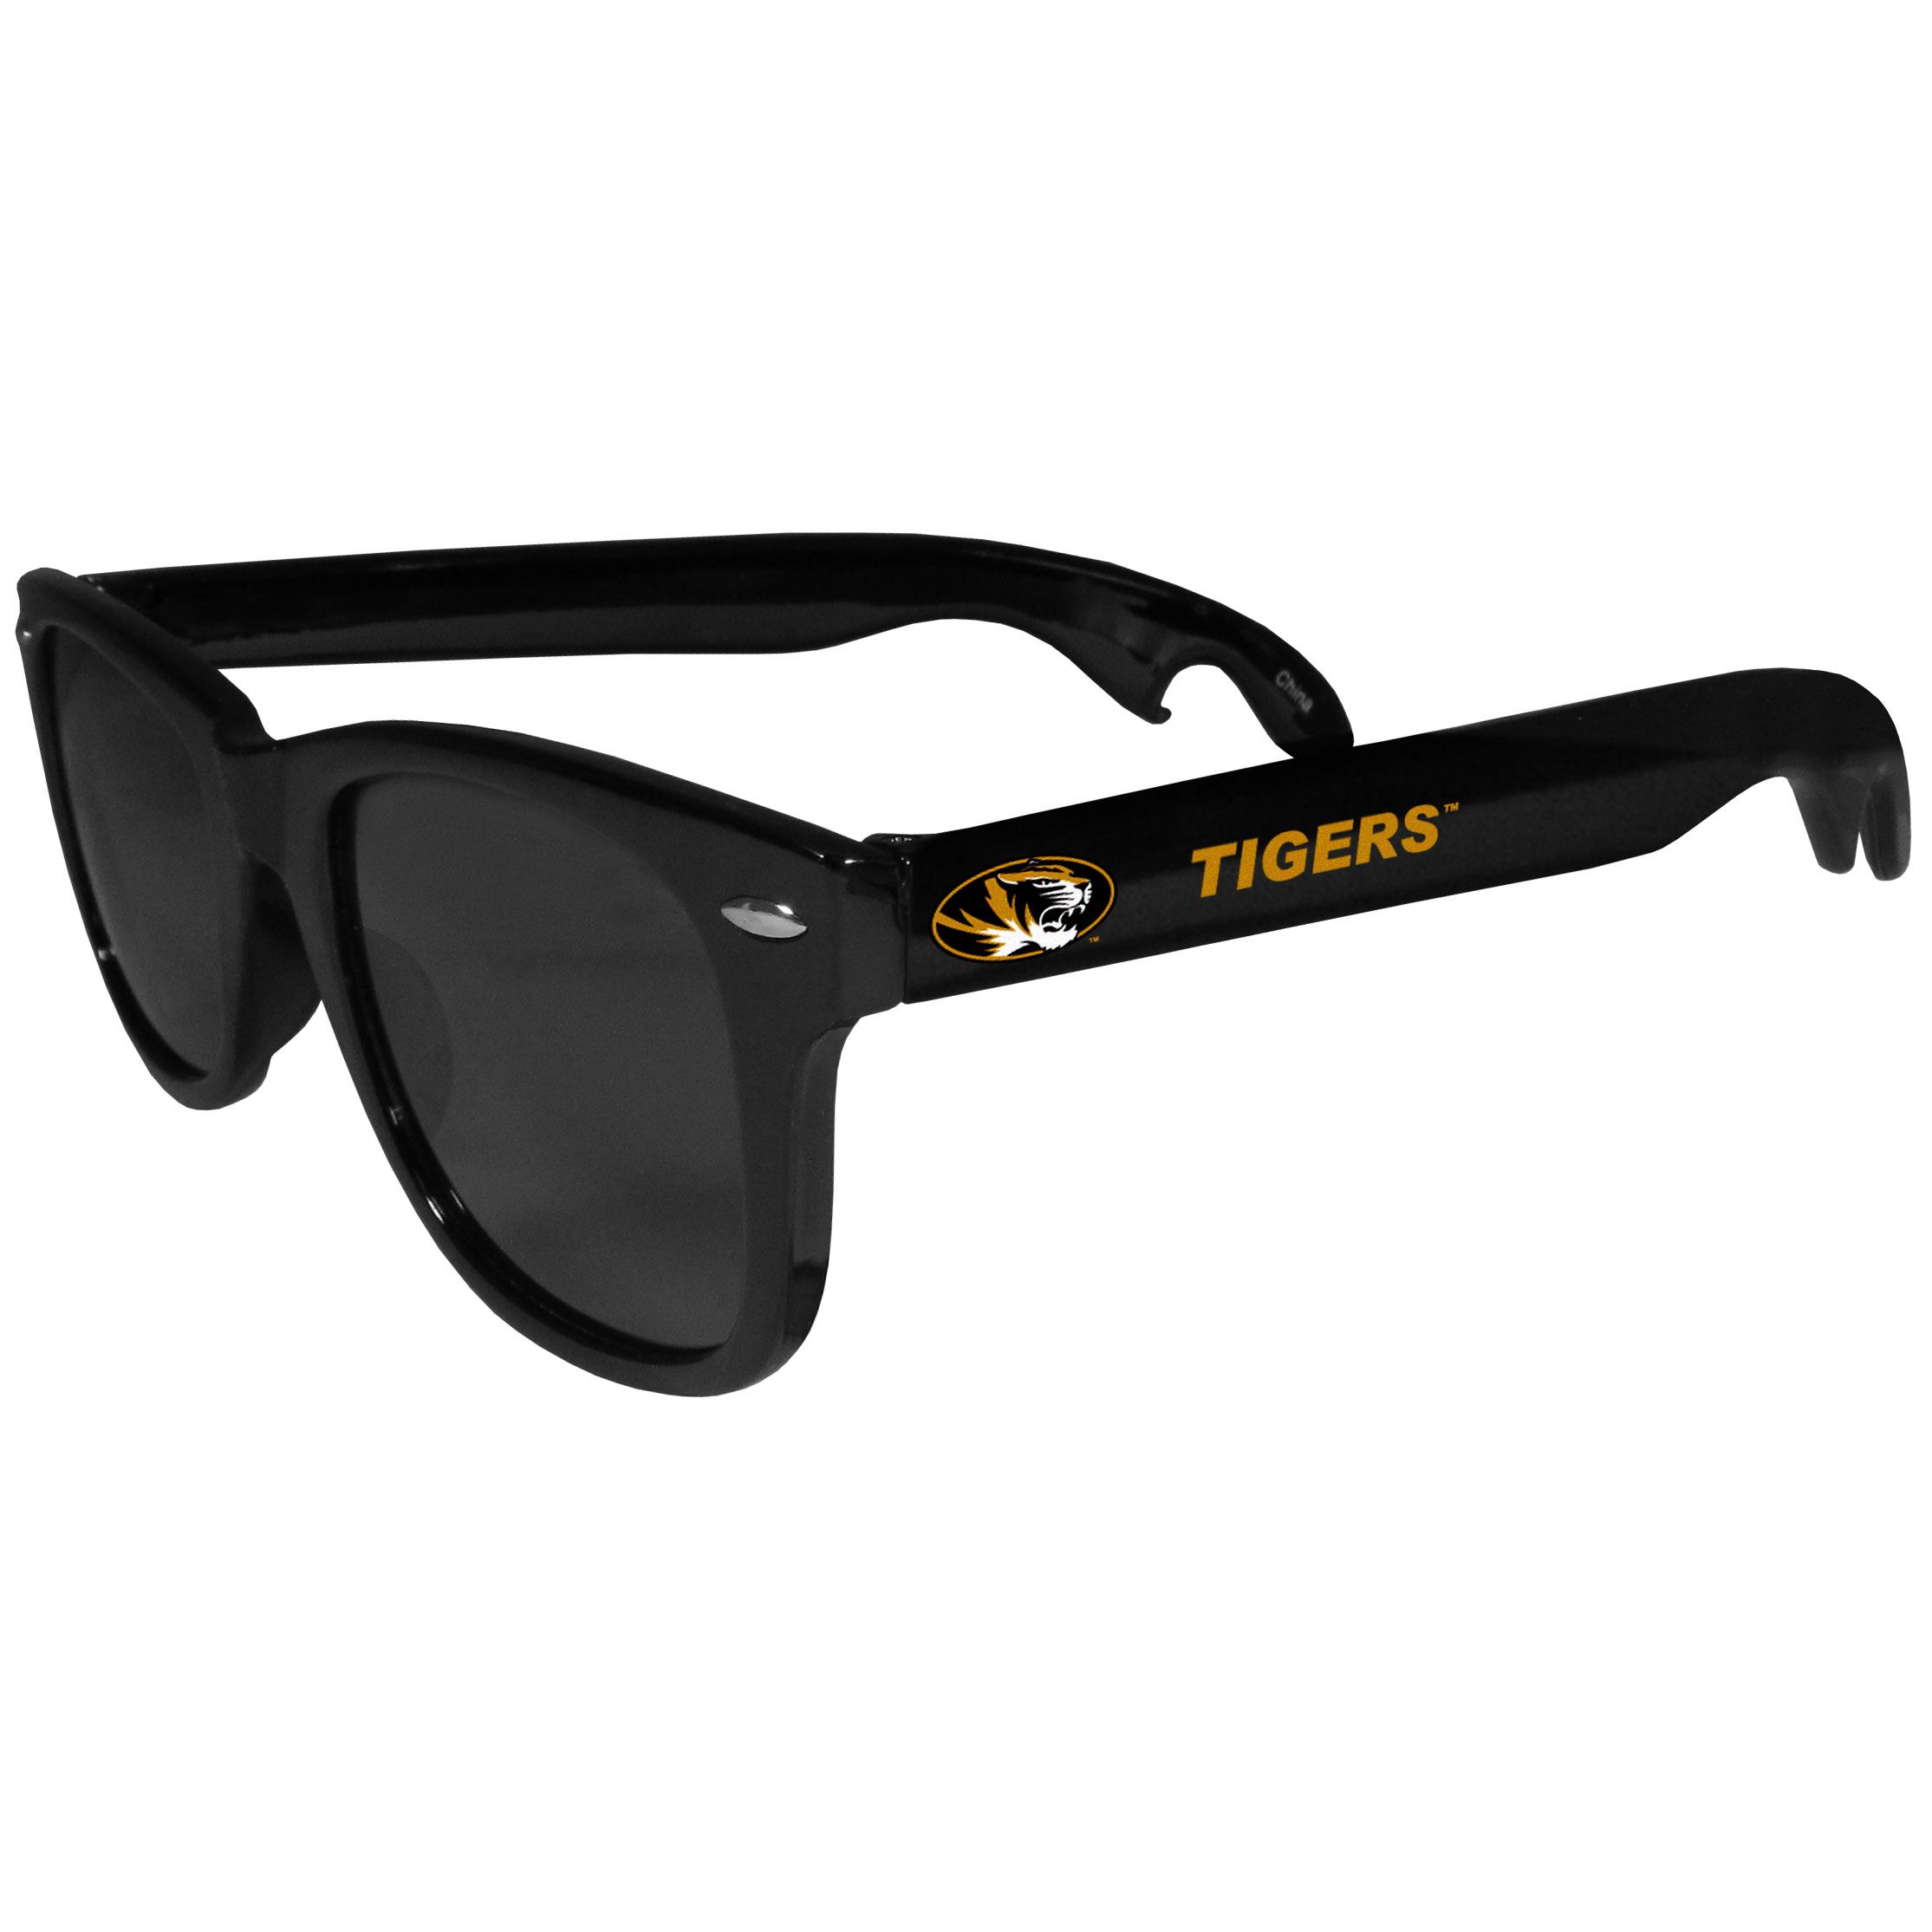 Missouri Tigers Beachfarer Bottle Opener Sunglasses - Seriously, these sunglasses open bottles! Keep the party going with these amazing Missouri Tigers bottle opener sunglasses. The stylish retro frames feature team designs on the arms and functional bottle openers on the end of the arms. Whether you are at the beach or having a backyard BBQ on game day, these shades will keep your eyes protected with 100% UVA/UVB protection and keep you hydrated with the handy bottle opener arms.